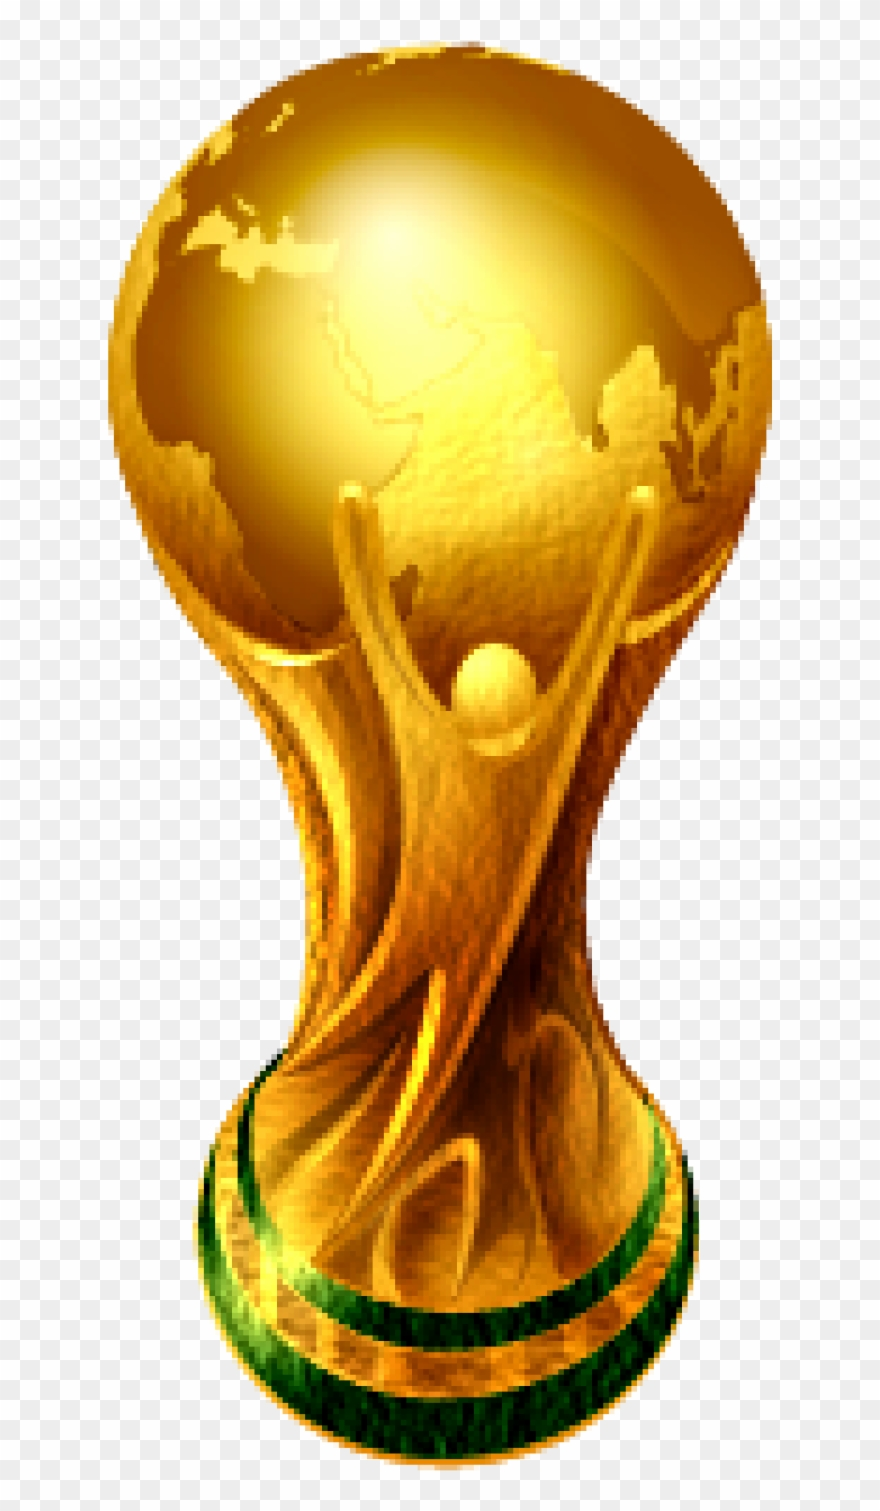 Fifa world cup clipart graphic free Clipart Fifa World Cup - Png Download (#2132904) - PinClipart graphic free